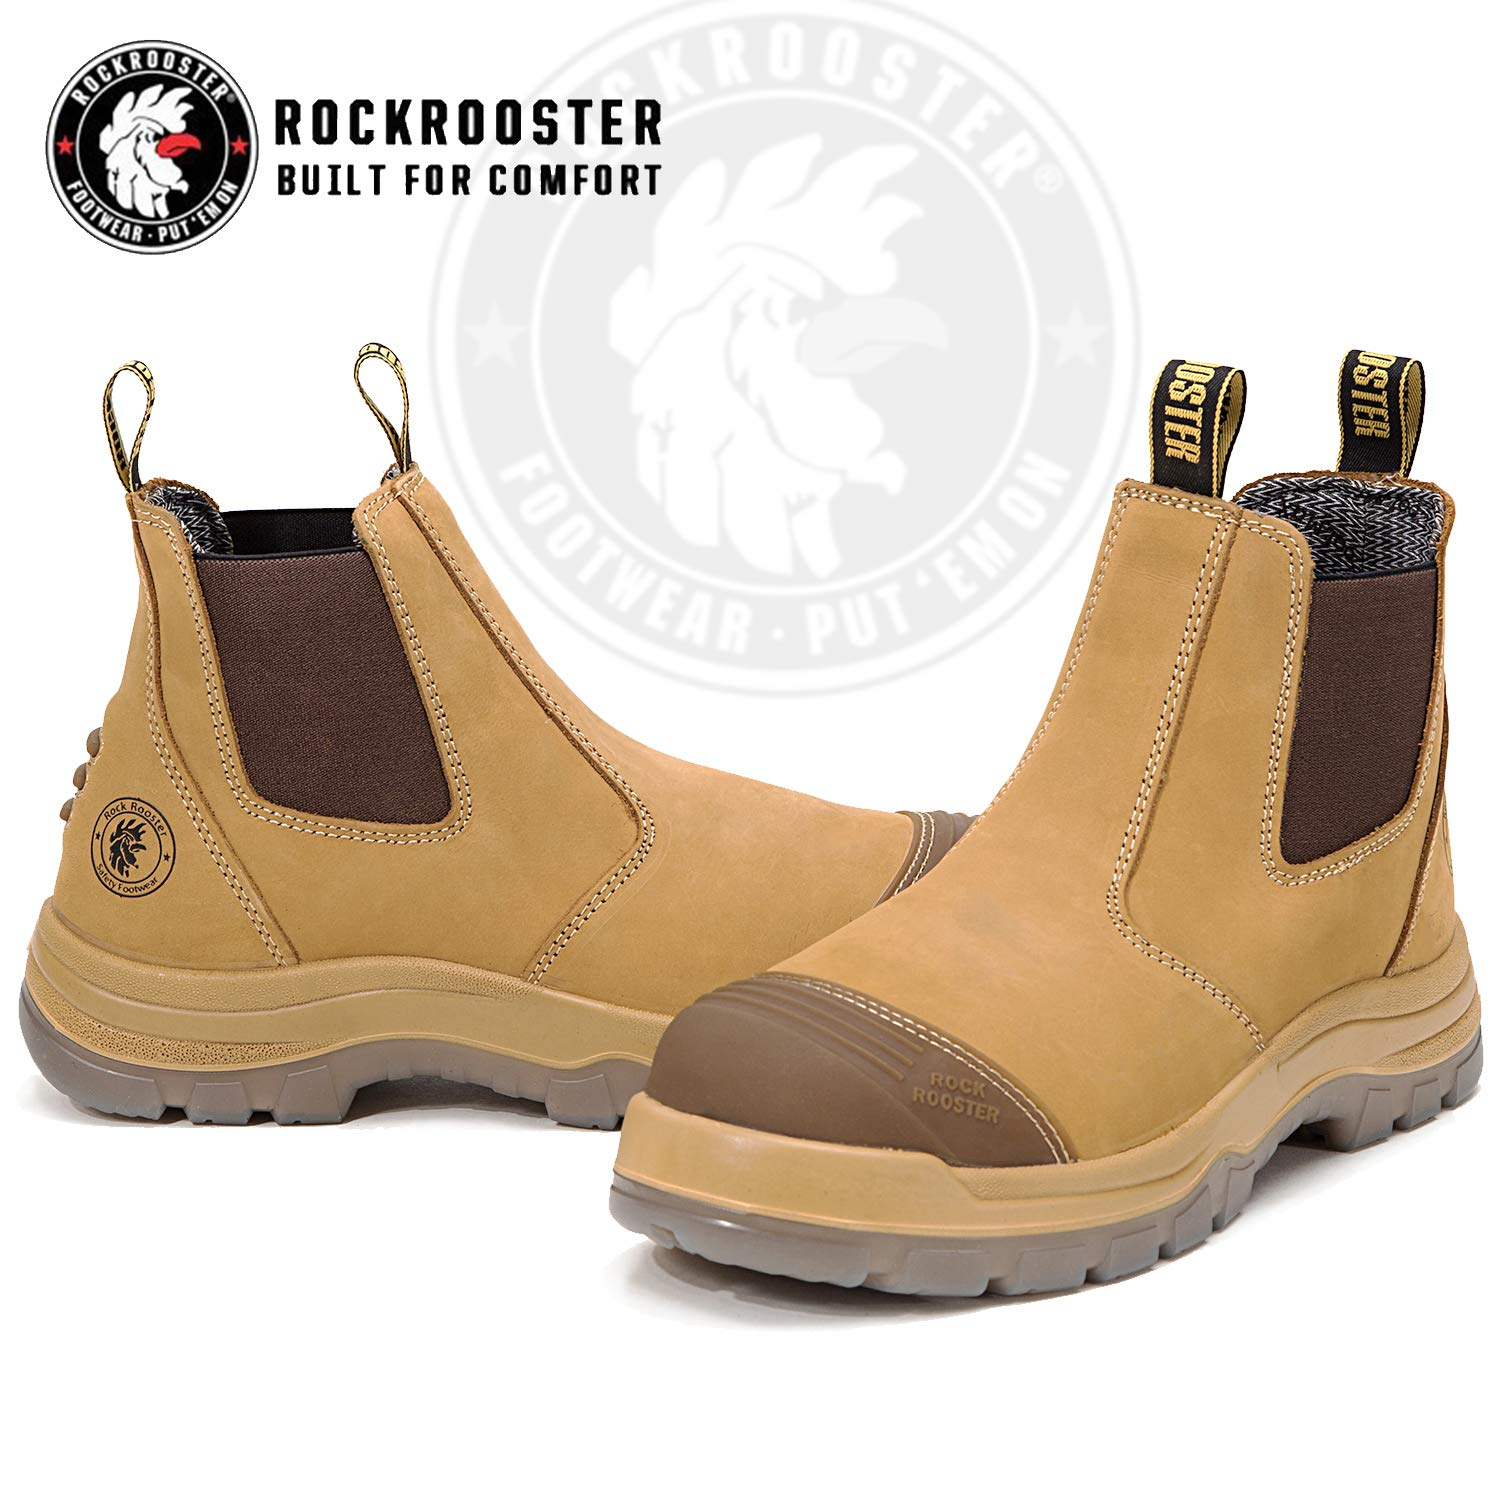 96a77227383 ROCKROOSTER Work Boots for Men, Steel Toe, Poron XRD, Coolmax, Antistatic,  Full Waxy Tumbled Leather Shoes, Non-Slip Safety Boot, EEE-Wide(AK227, ...